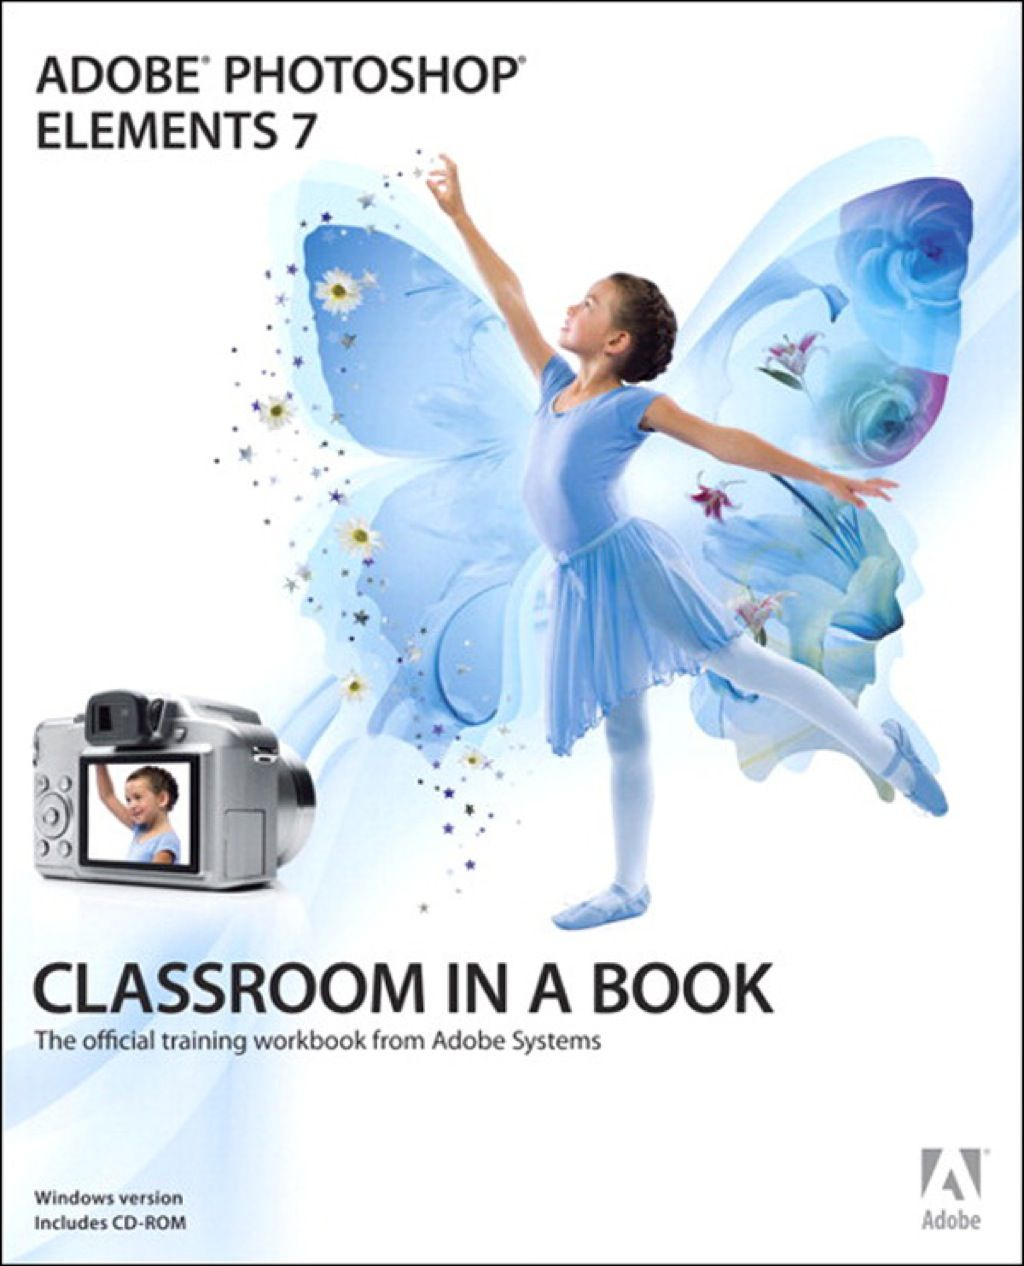 Adobe Photoshop Elements 7 Classroom In A Book Ebook In